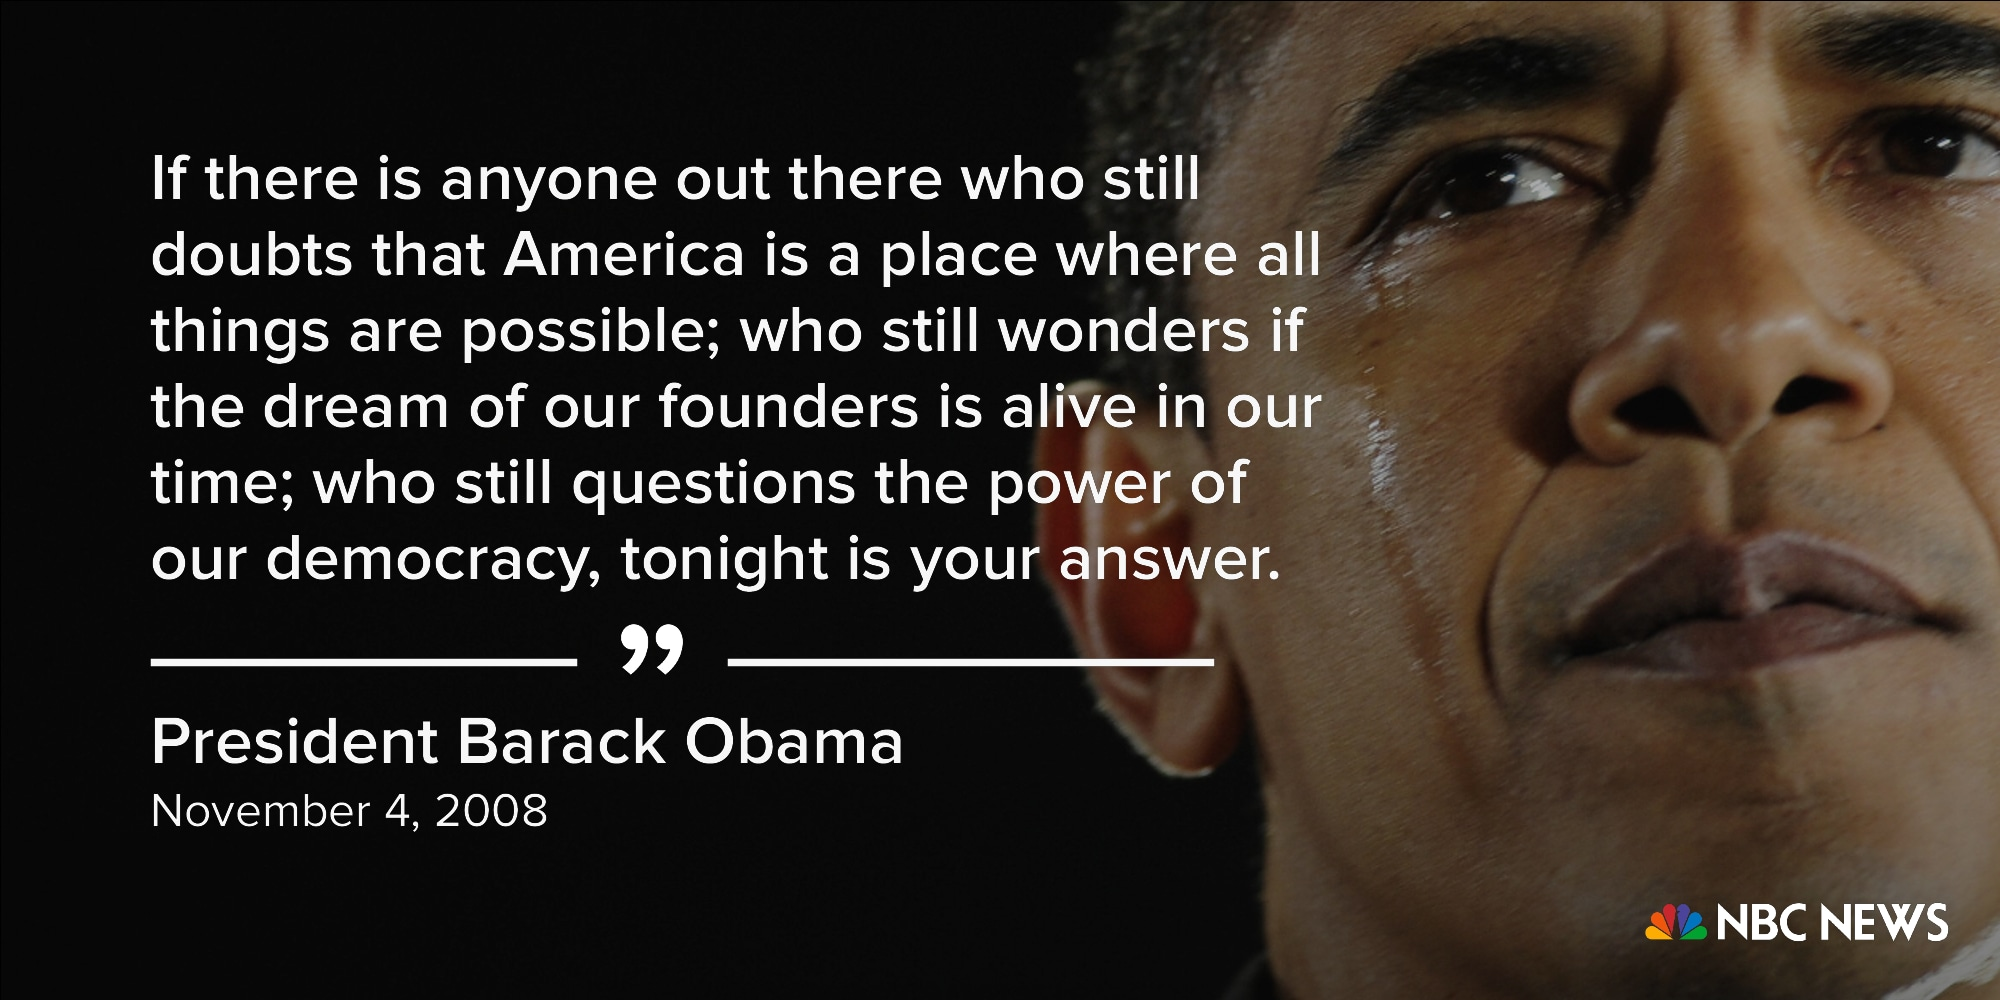 Most Famous Sayings The 15 Most Telling Quotes Of Obama's Presidency  Nbc News